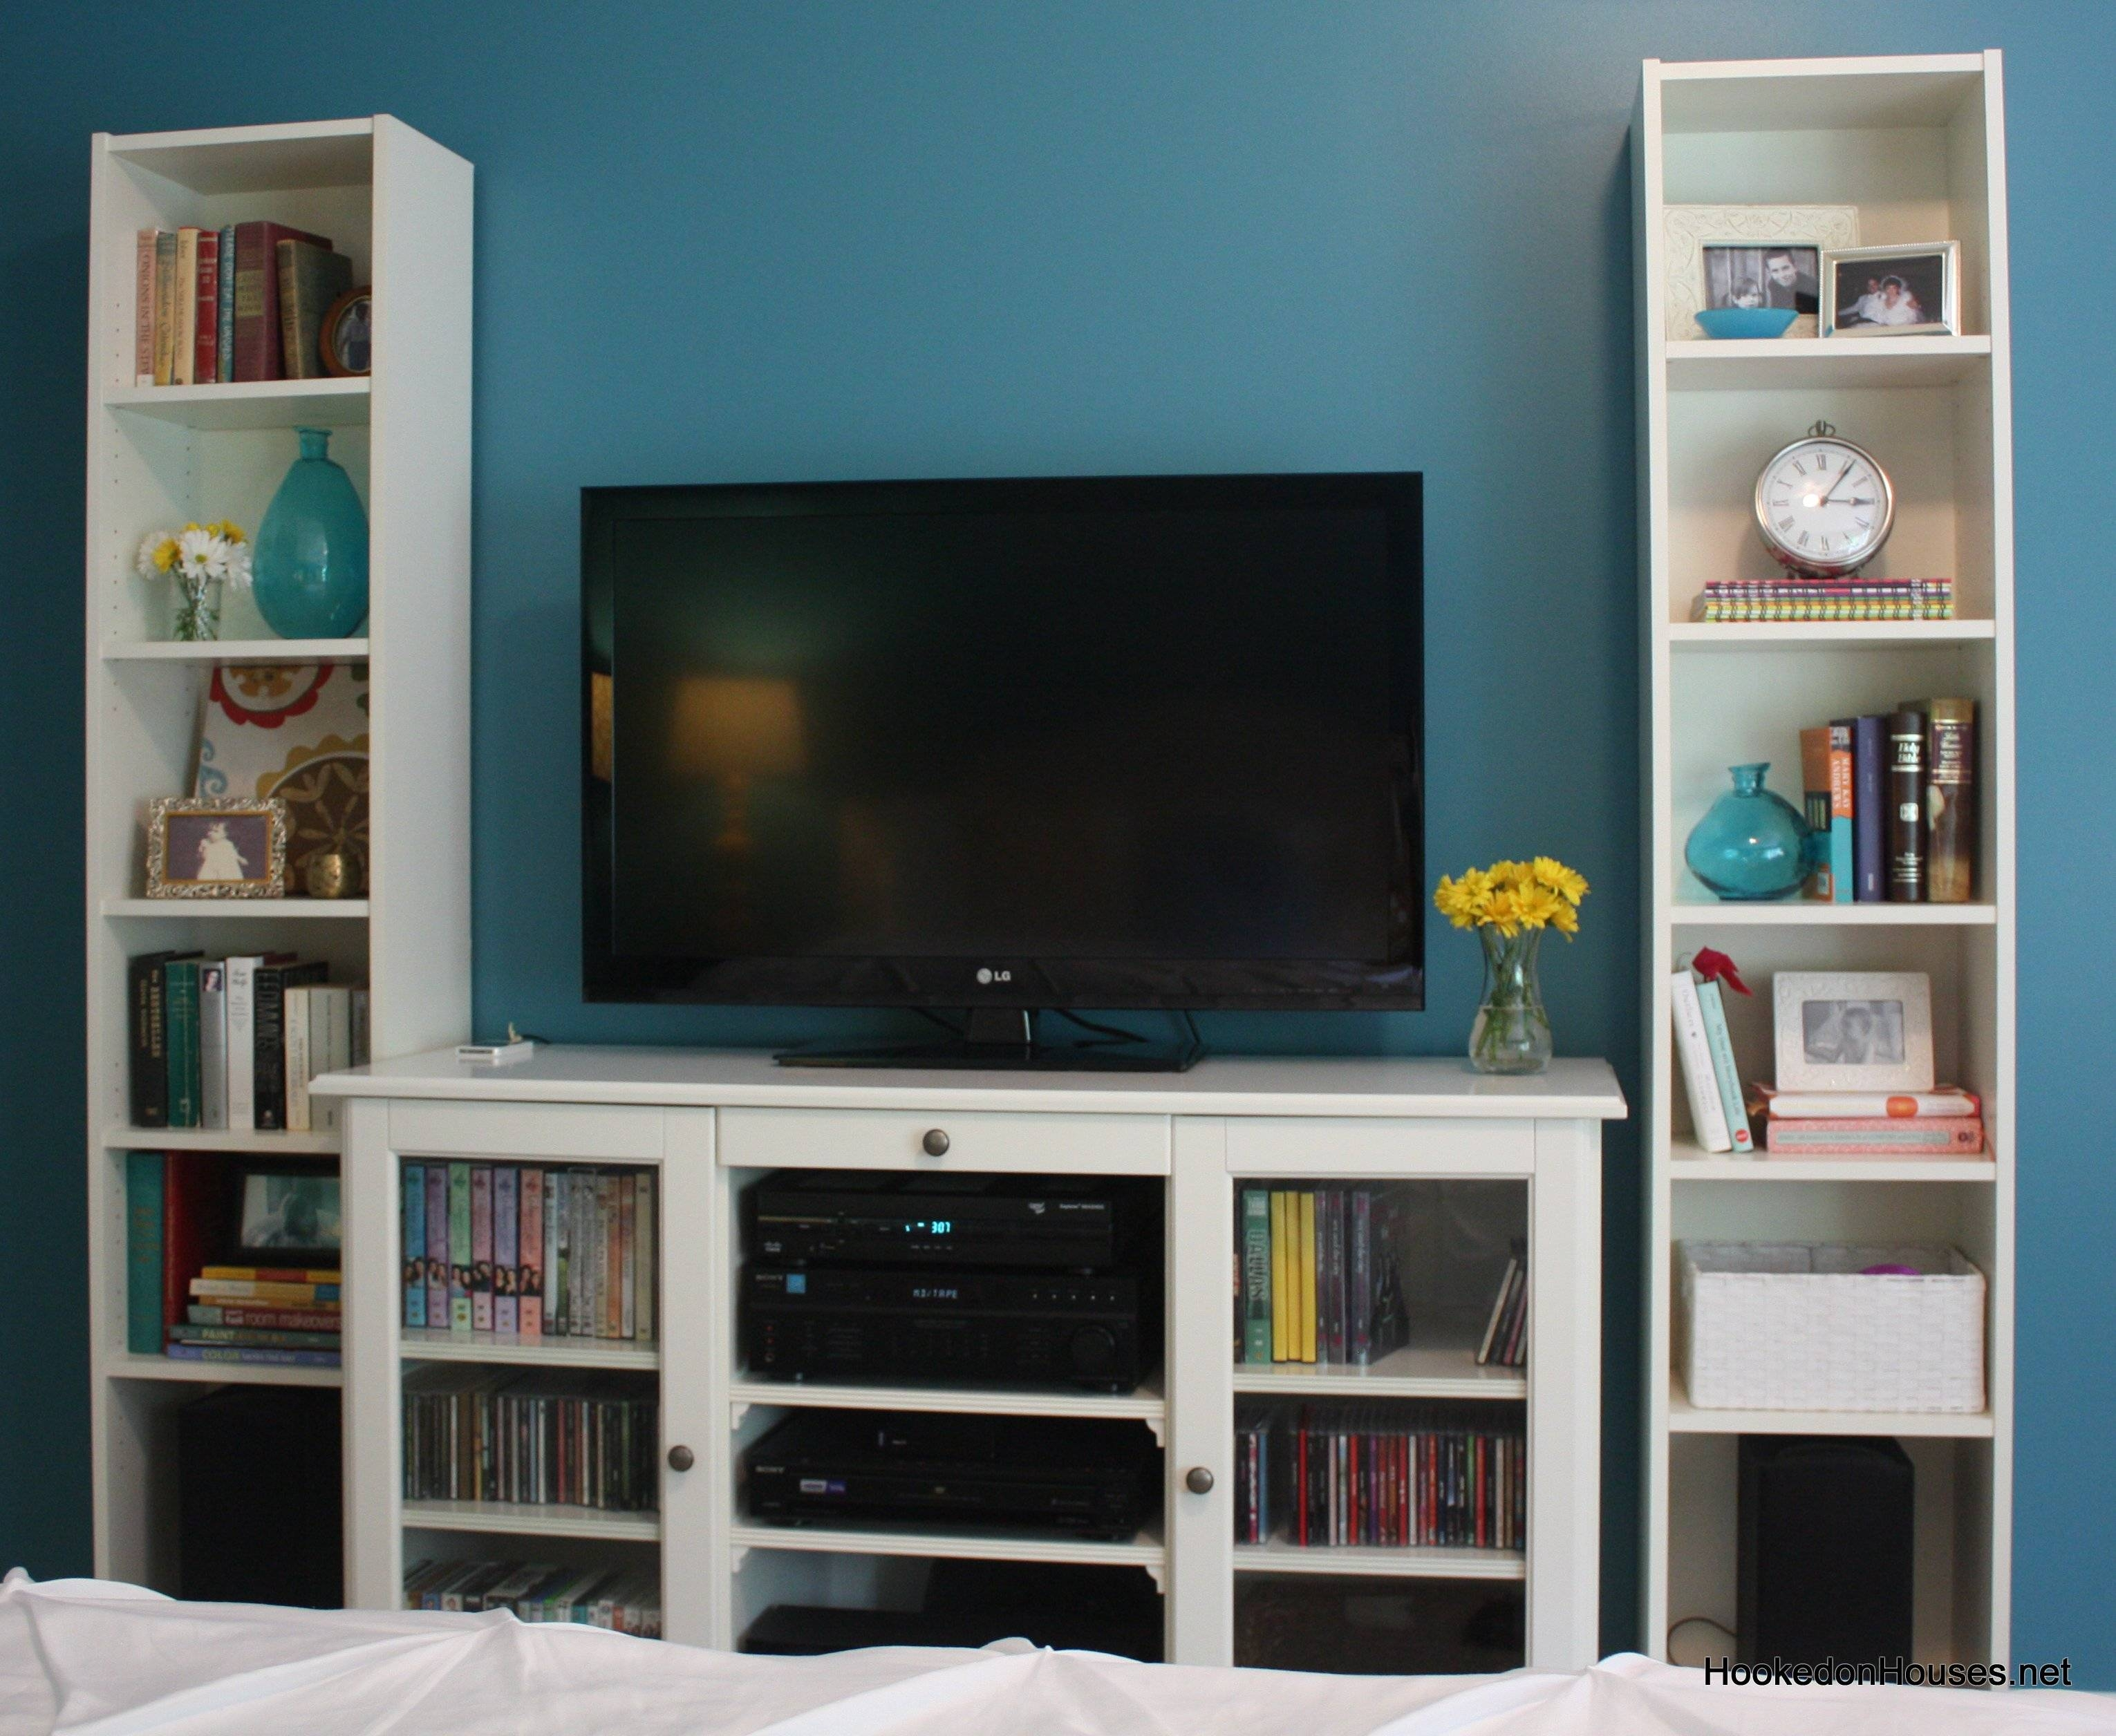 Tv Cabinet And Bookshelves - Hooked On Houses throughout Tv Stands Bookshelf Combo (Image 7 of 15)